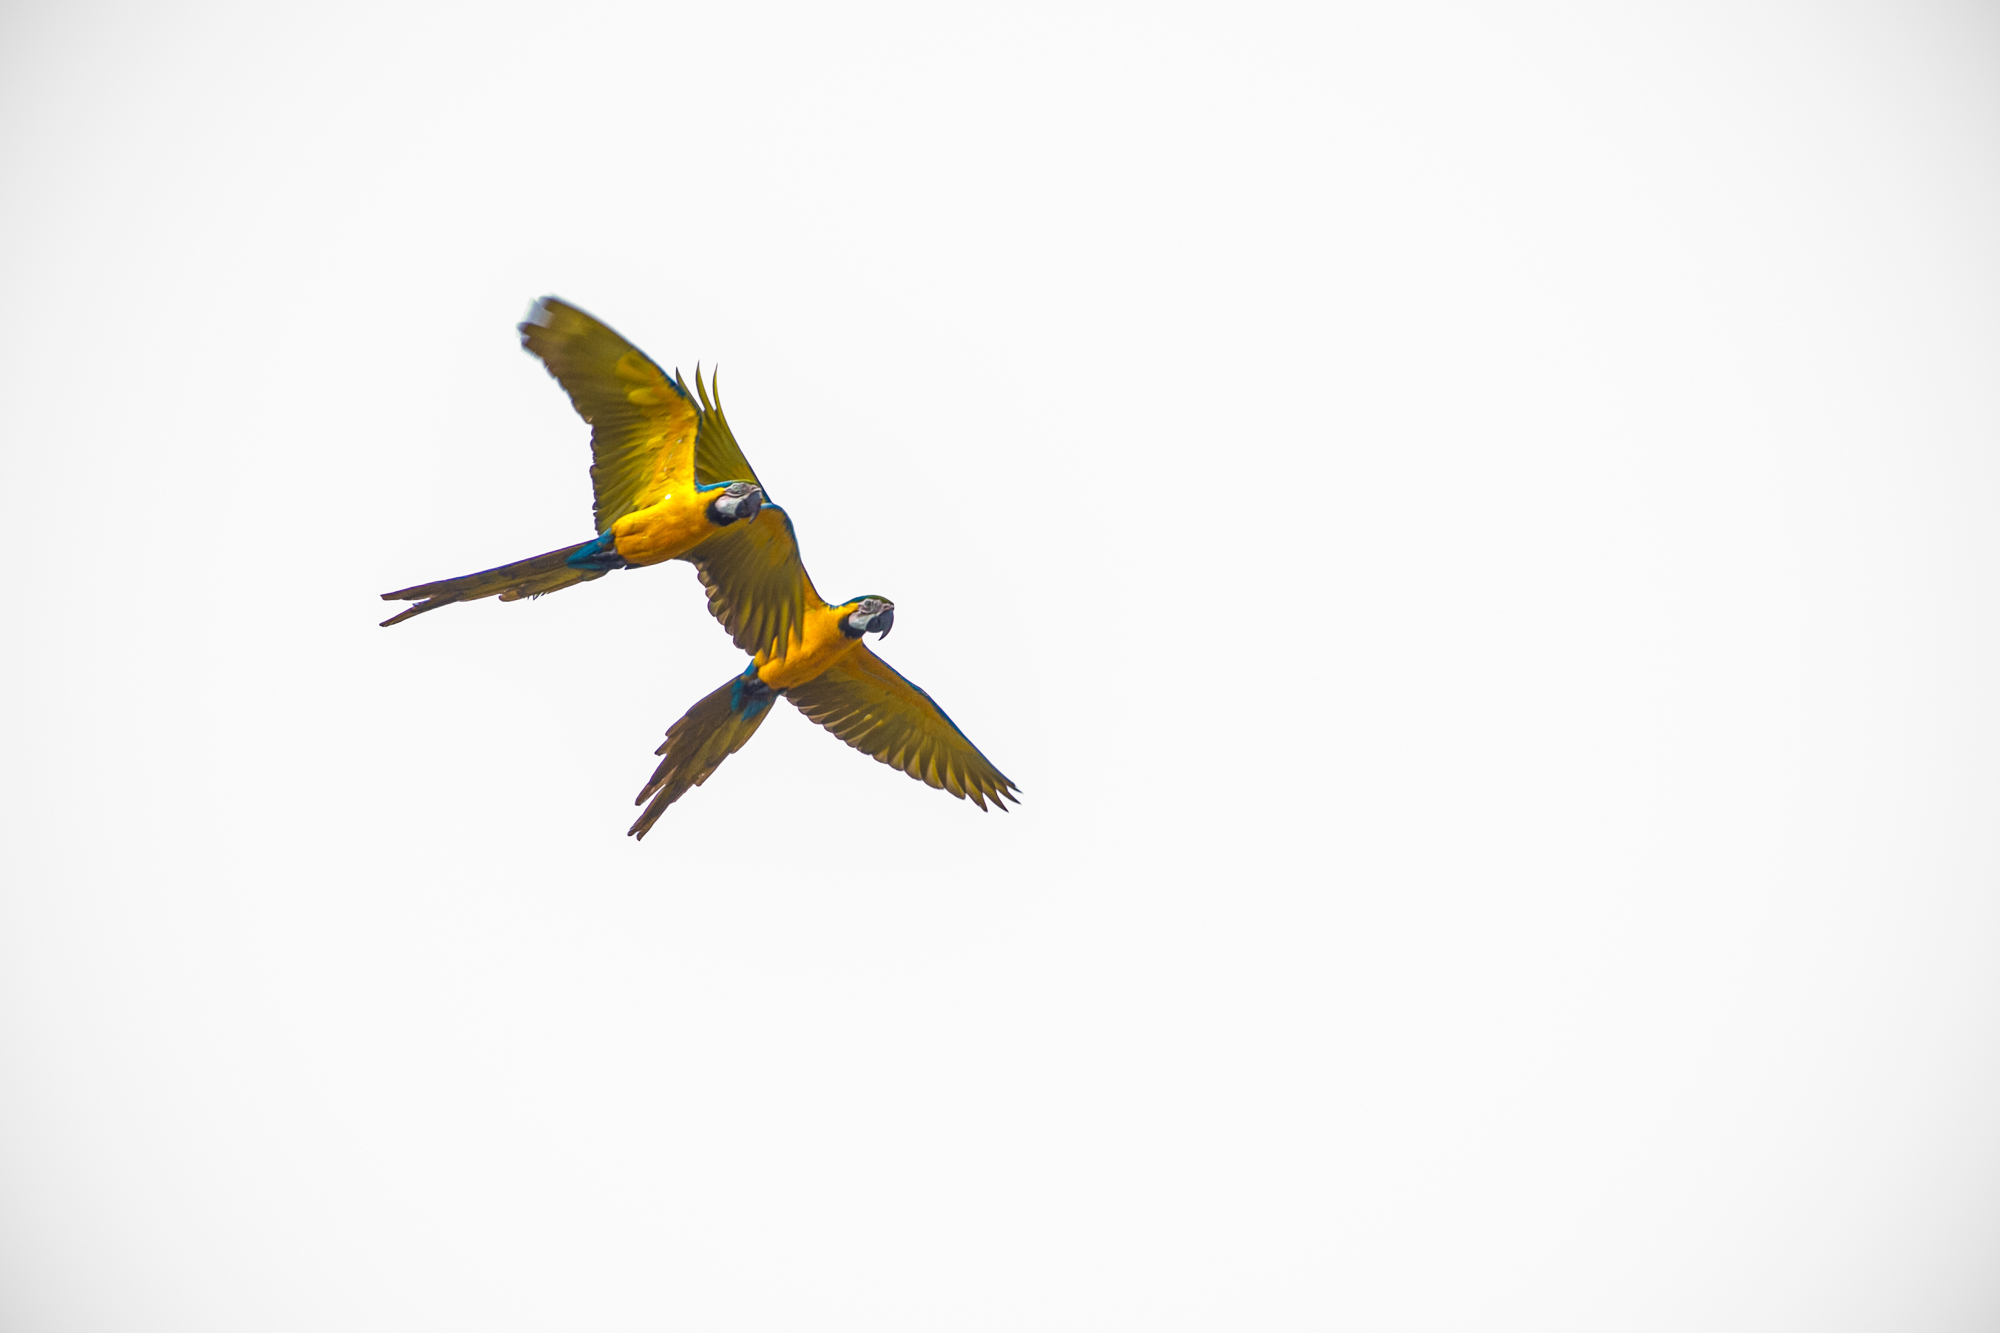 Pair of Macaw parrots flying overhead on a cloudy day.